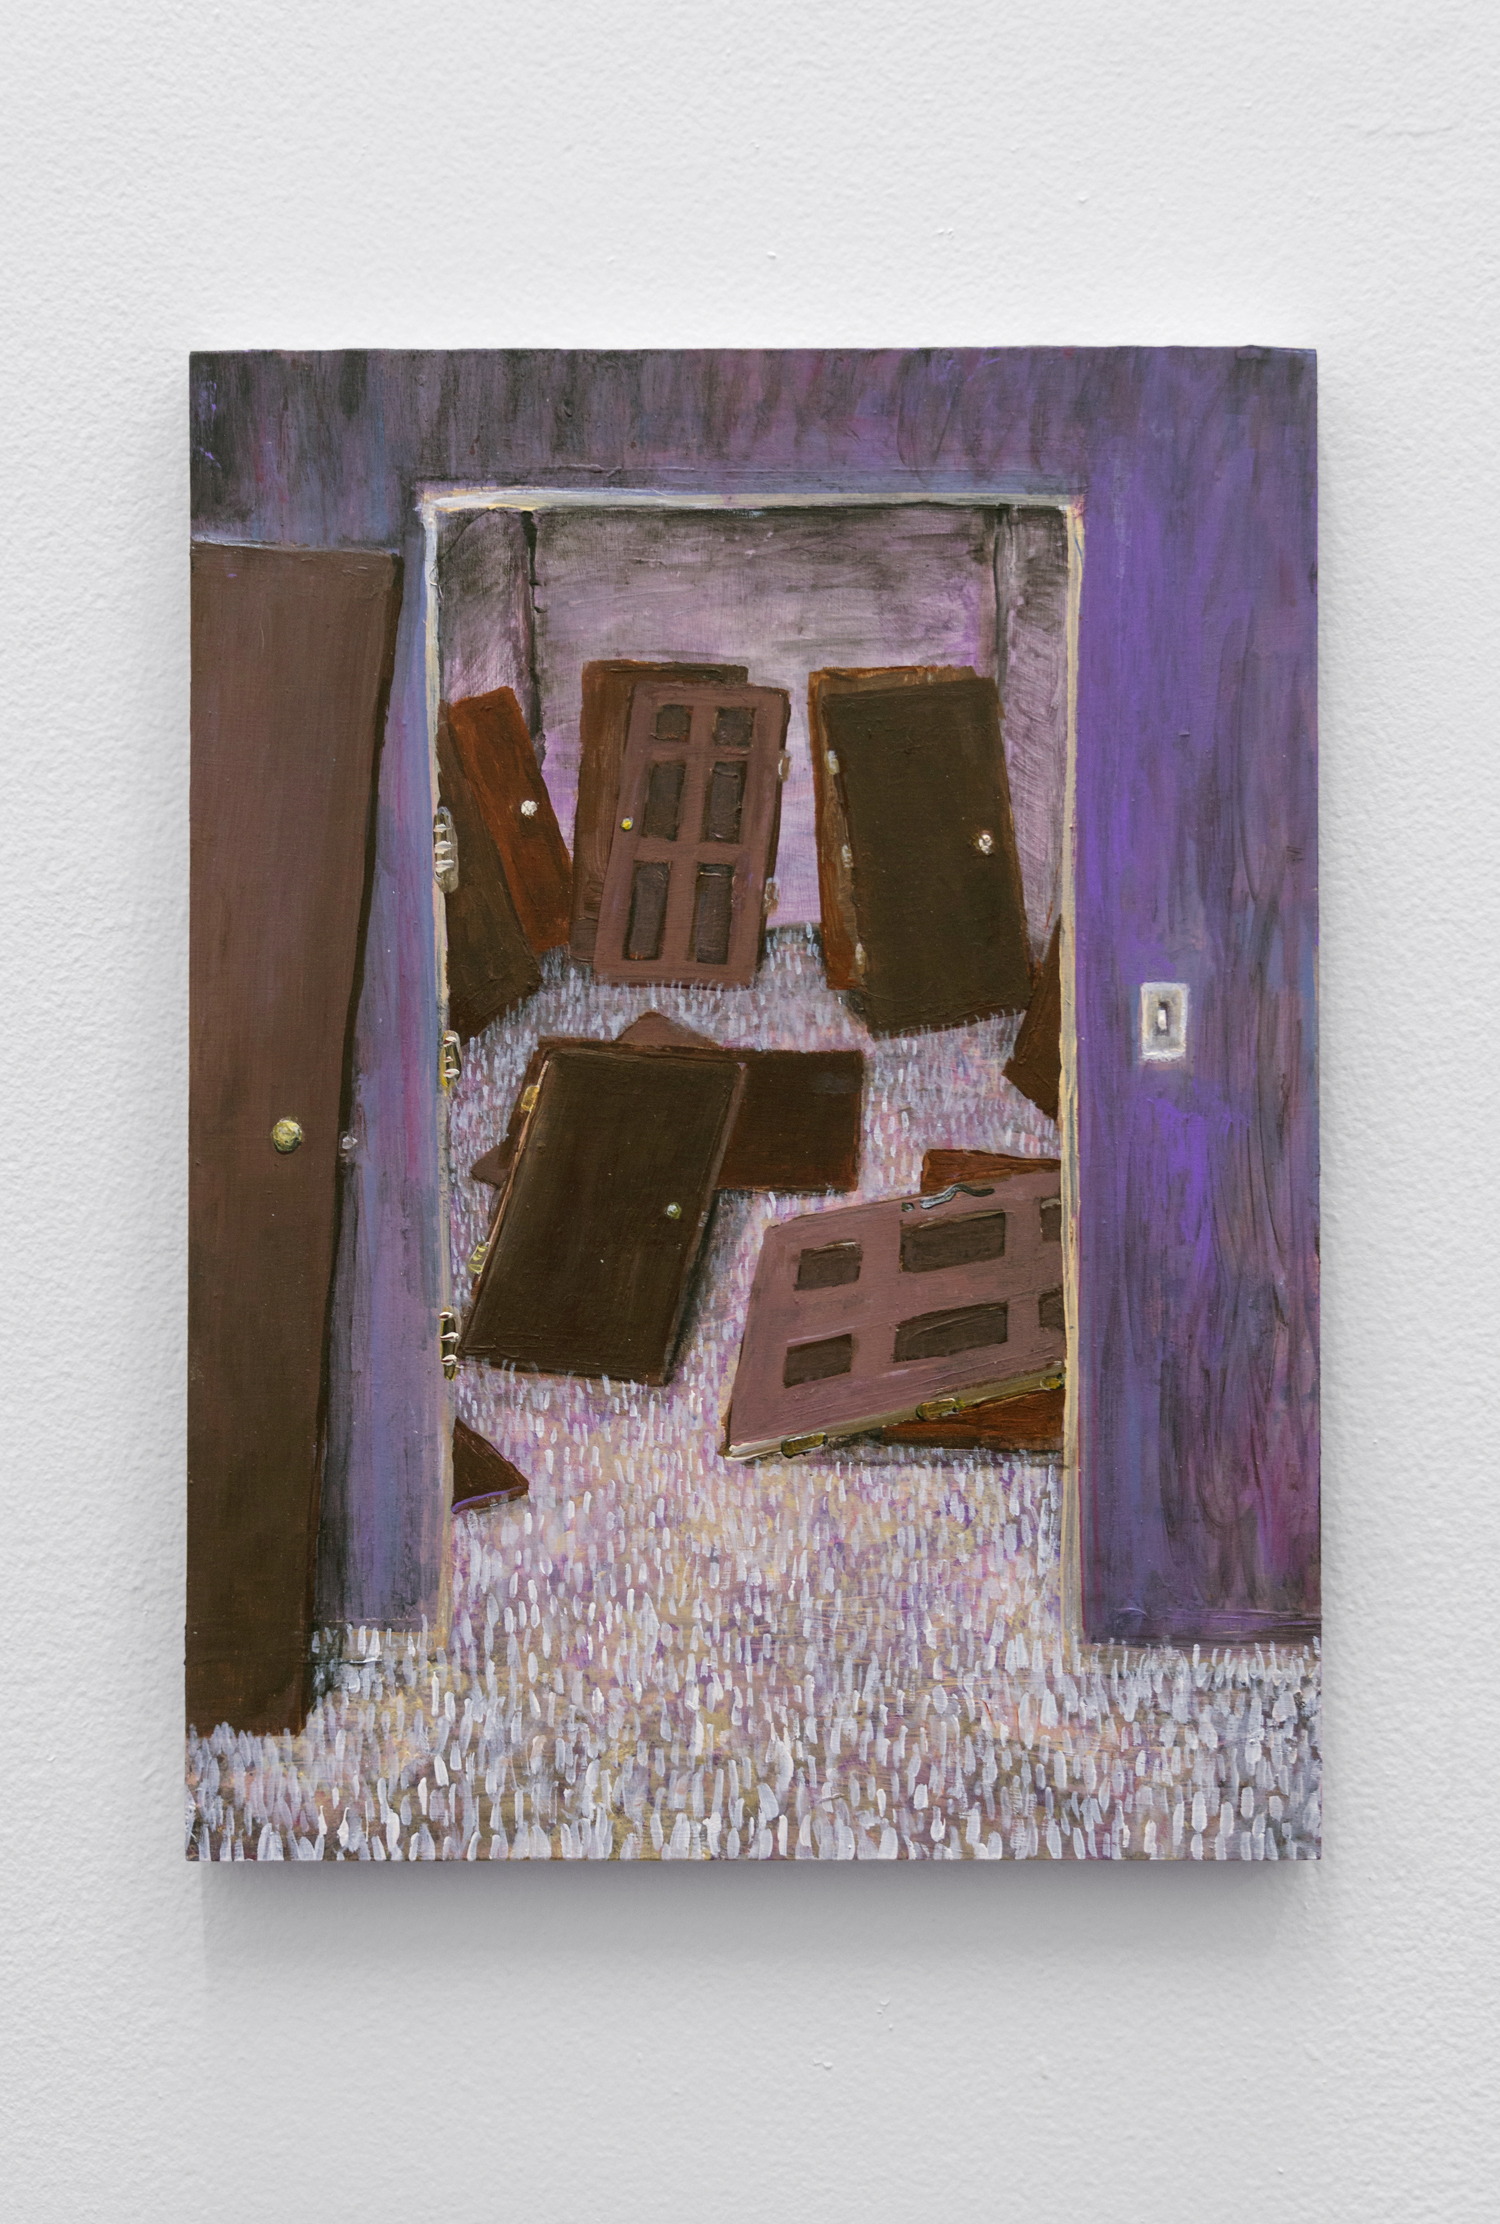 Doors , Acrylic and flashe on cradled birch panel 14 x 11 in, 2019